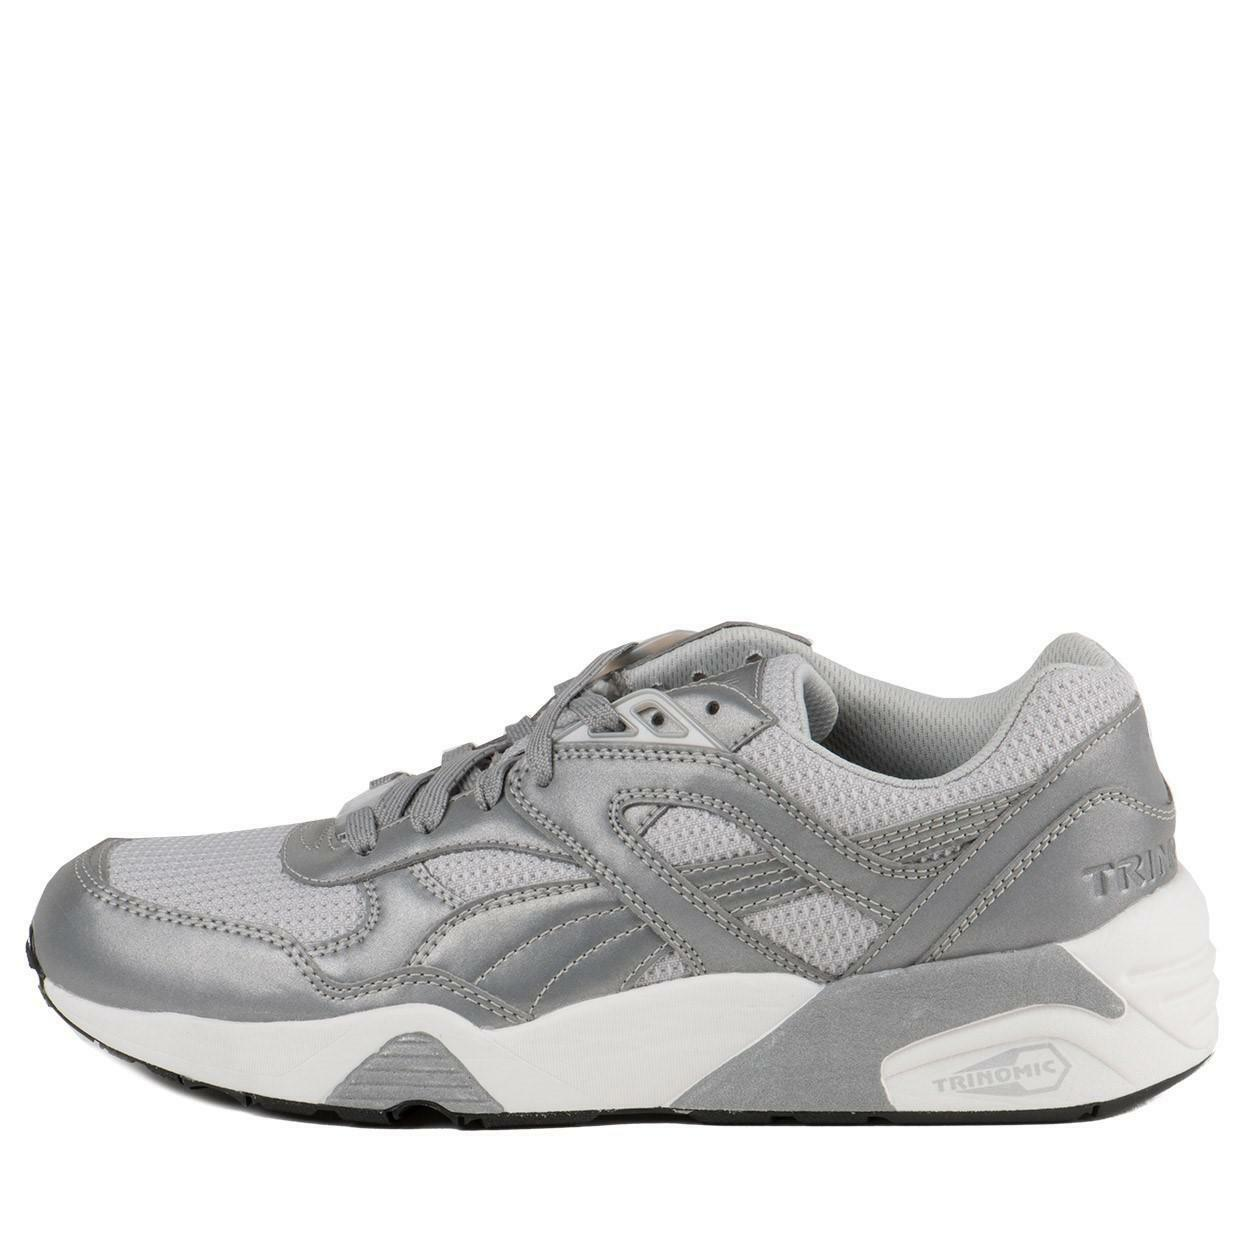 Puma R698 Reflective   358635 01 Metallic grau Men Sz 7.5 - 10